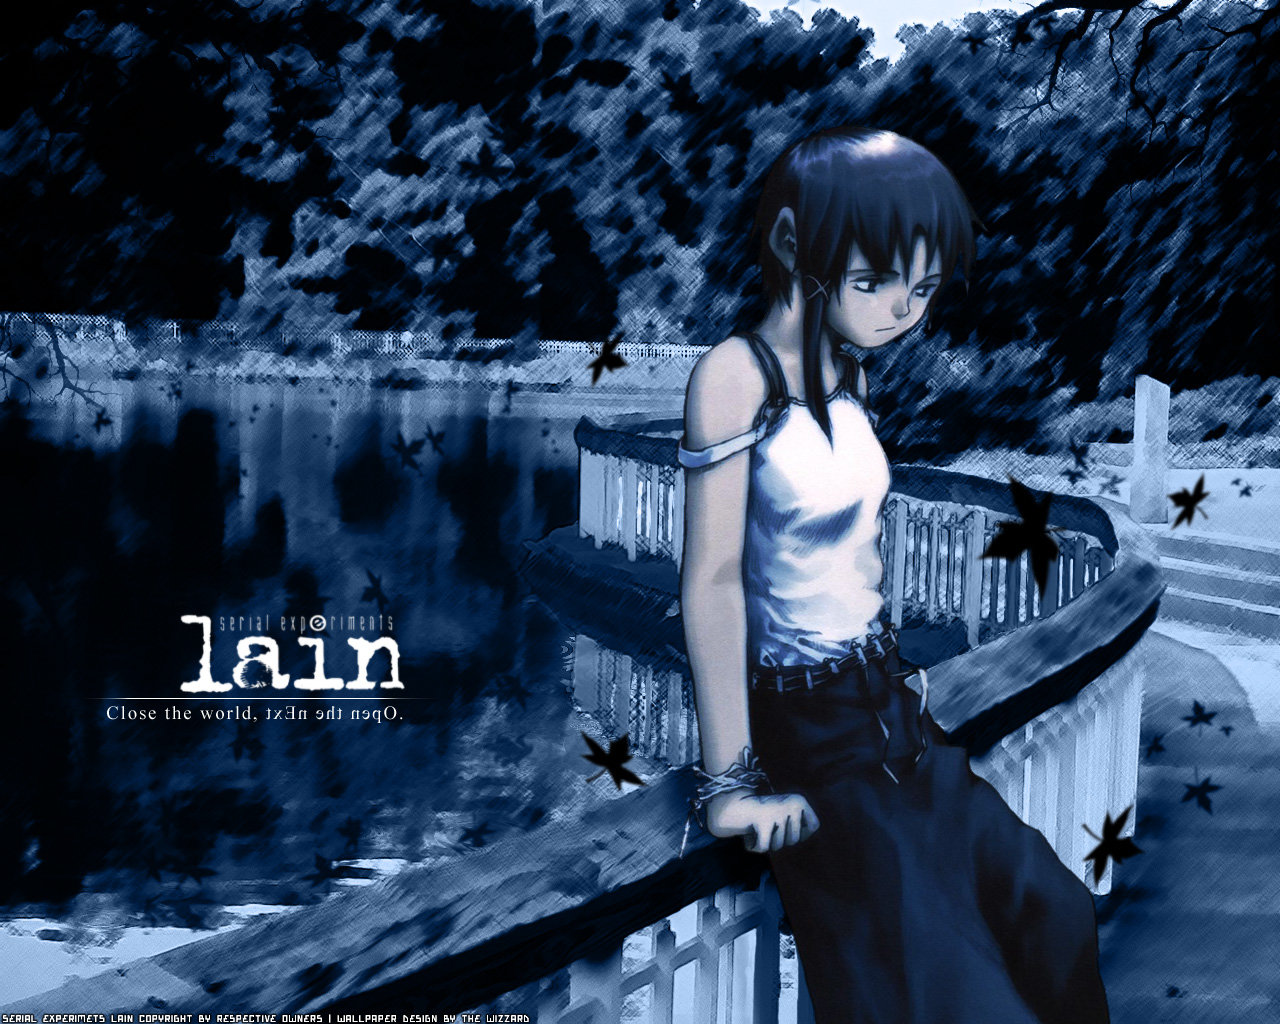 Download hd 1280x1024 Serial Experiments Lain desktop background ID:127912 for free